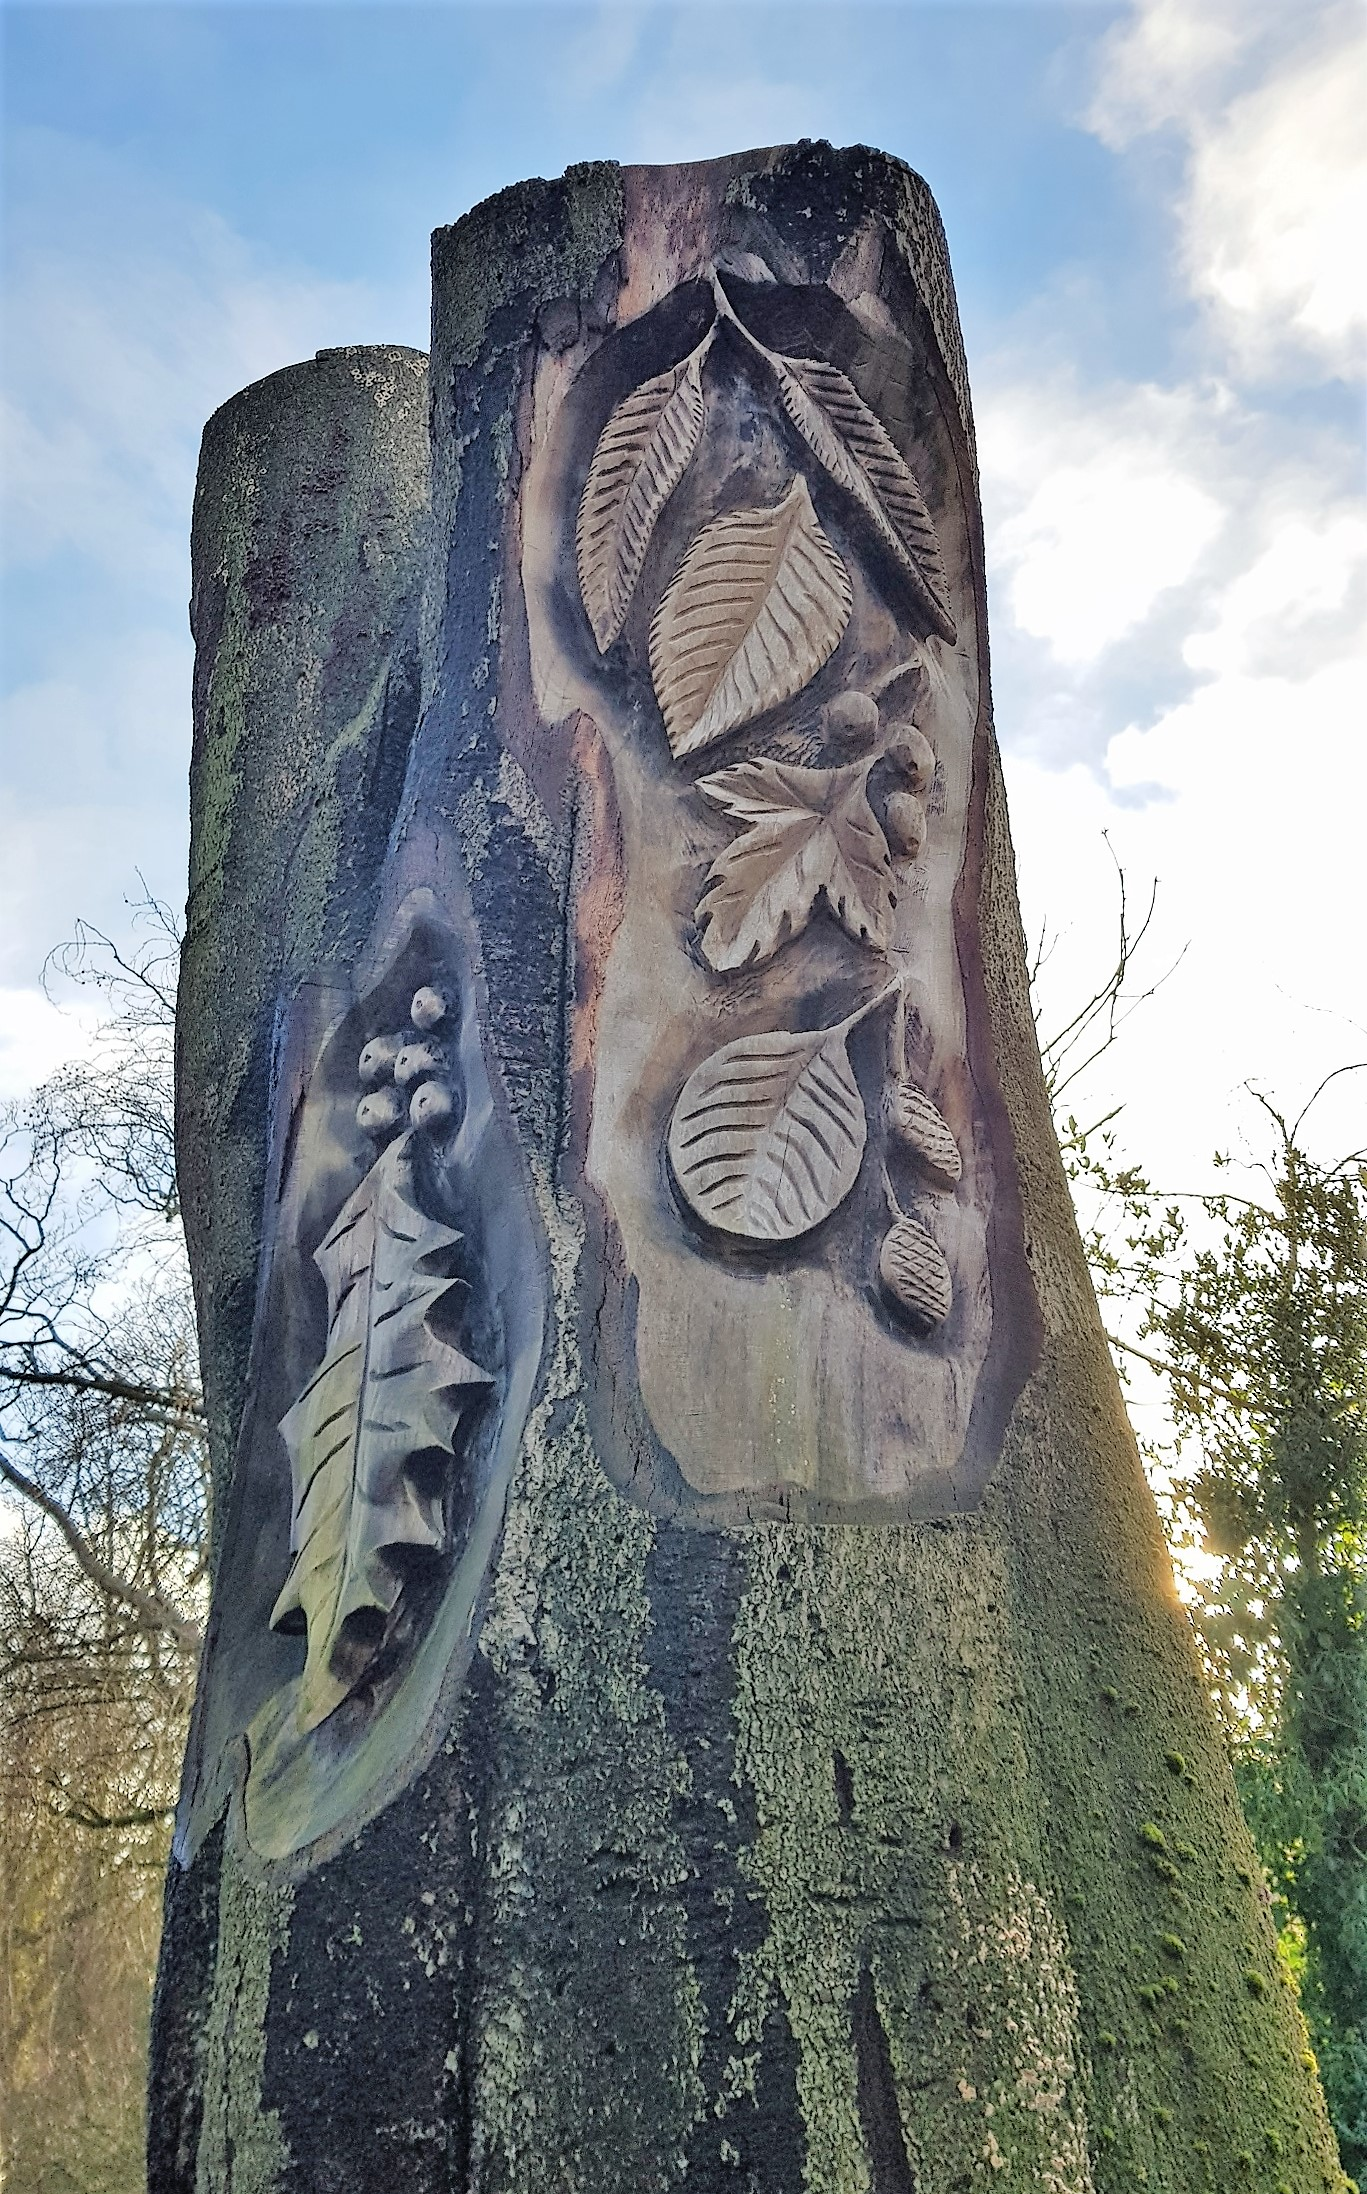 Leaves carved into a tall tree trunk